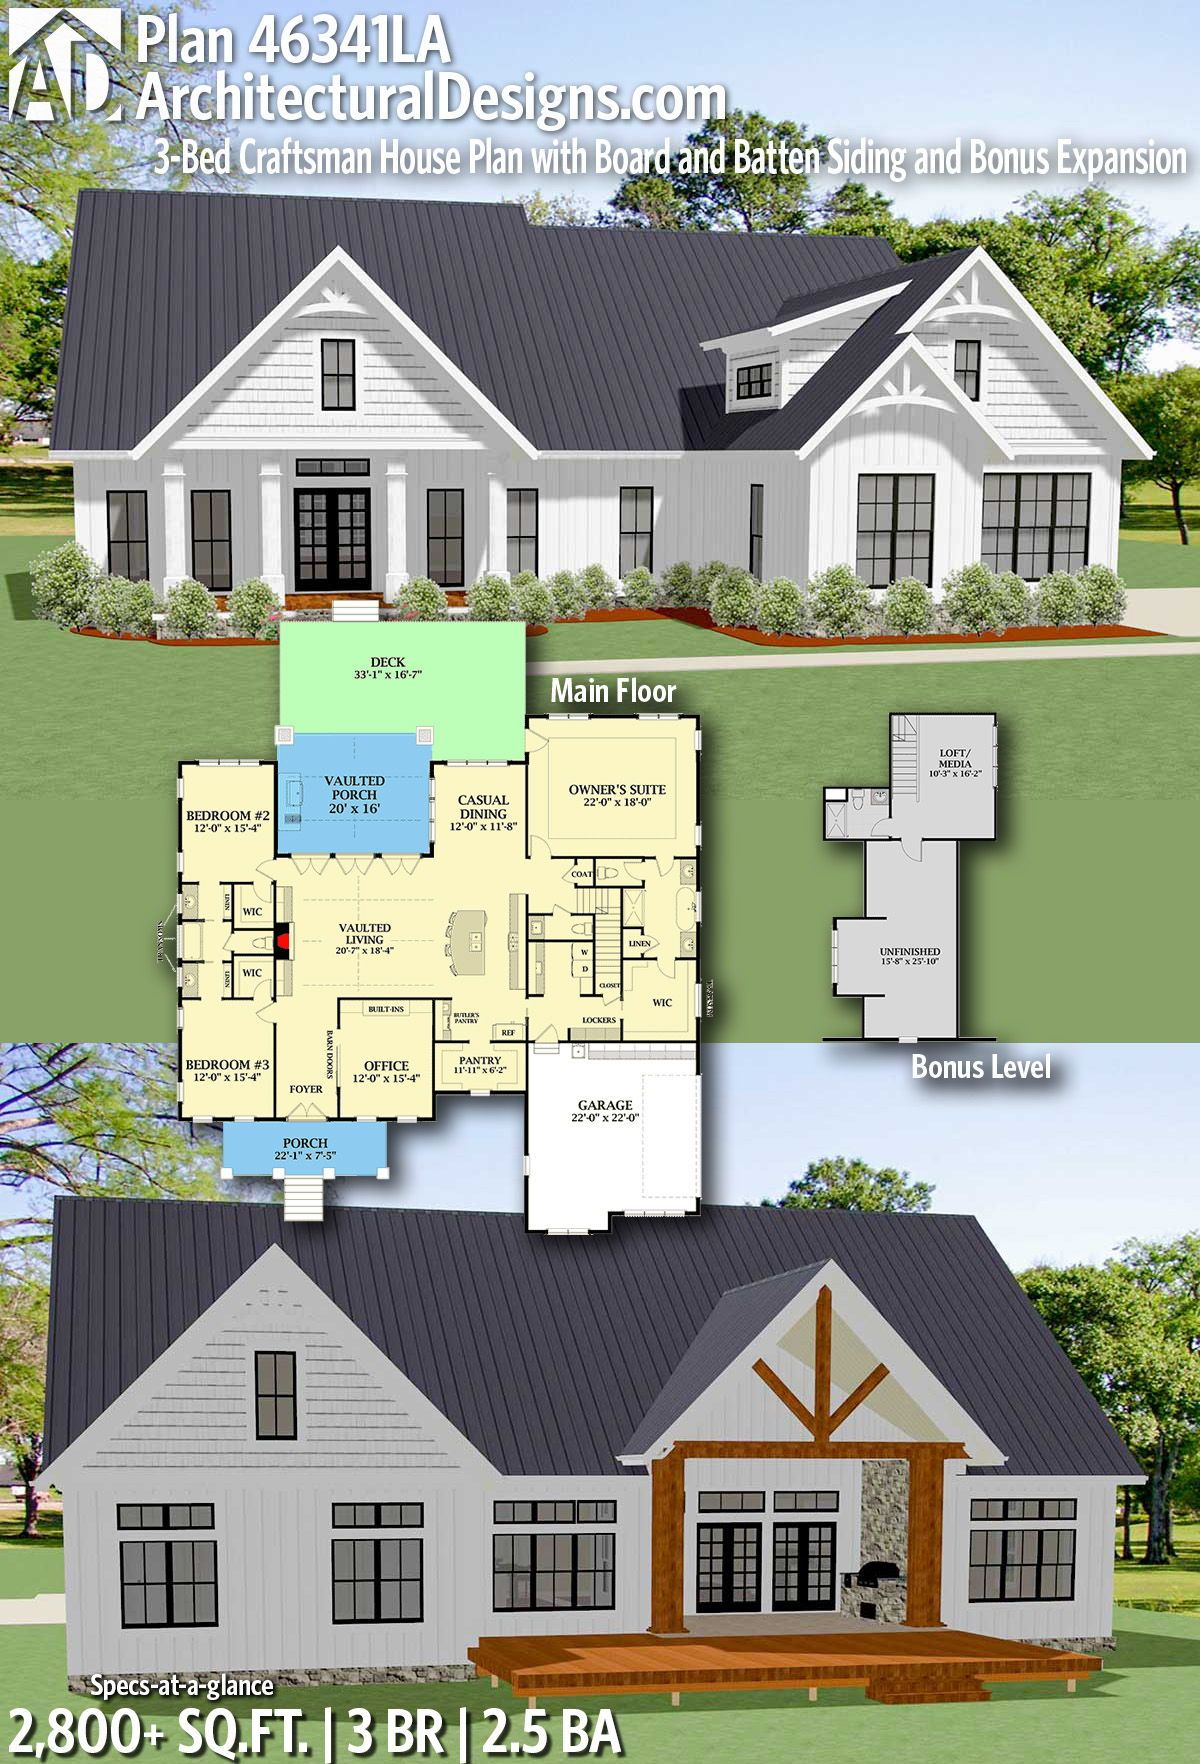 Plan 46341la 3 Bed Craftsman House Plan With Board And Batten Siding And Bonus Expansion Craftsman House Plans Craftsman House New House Plans